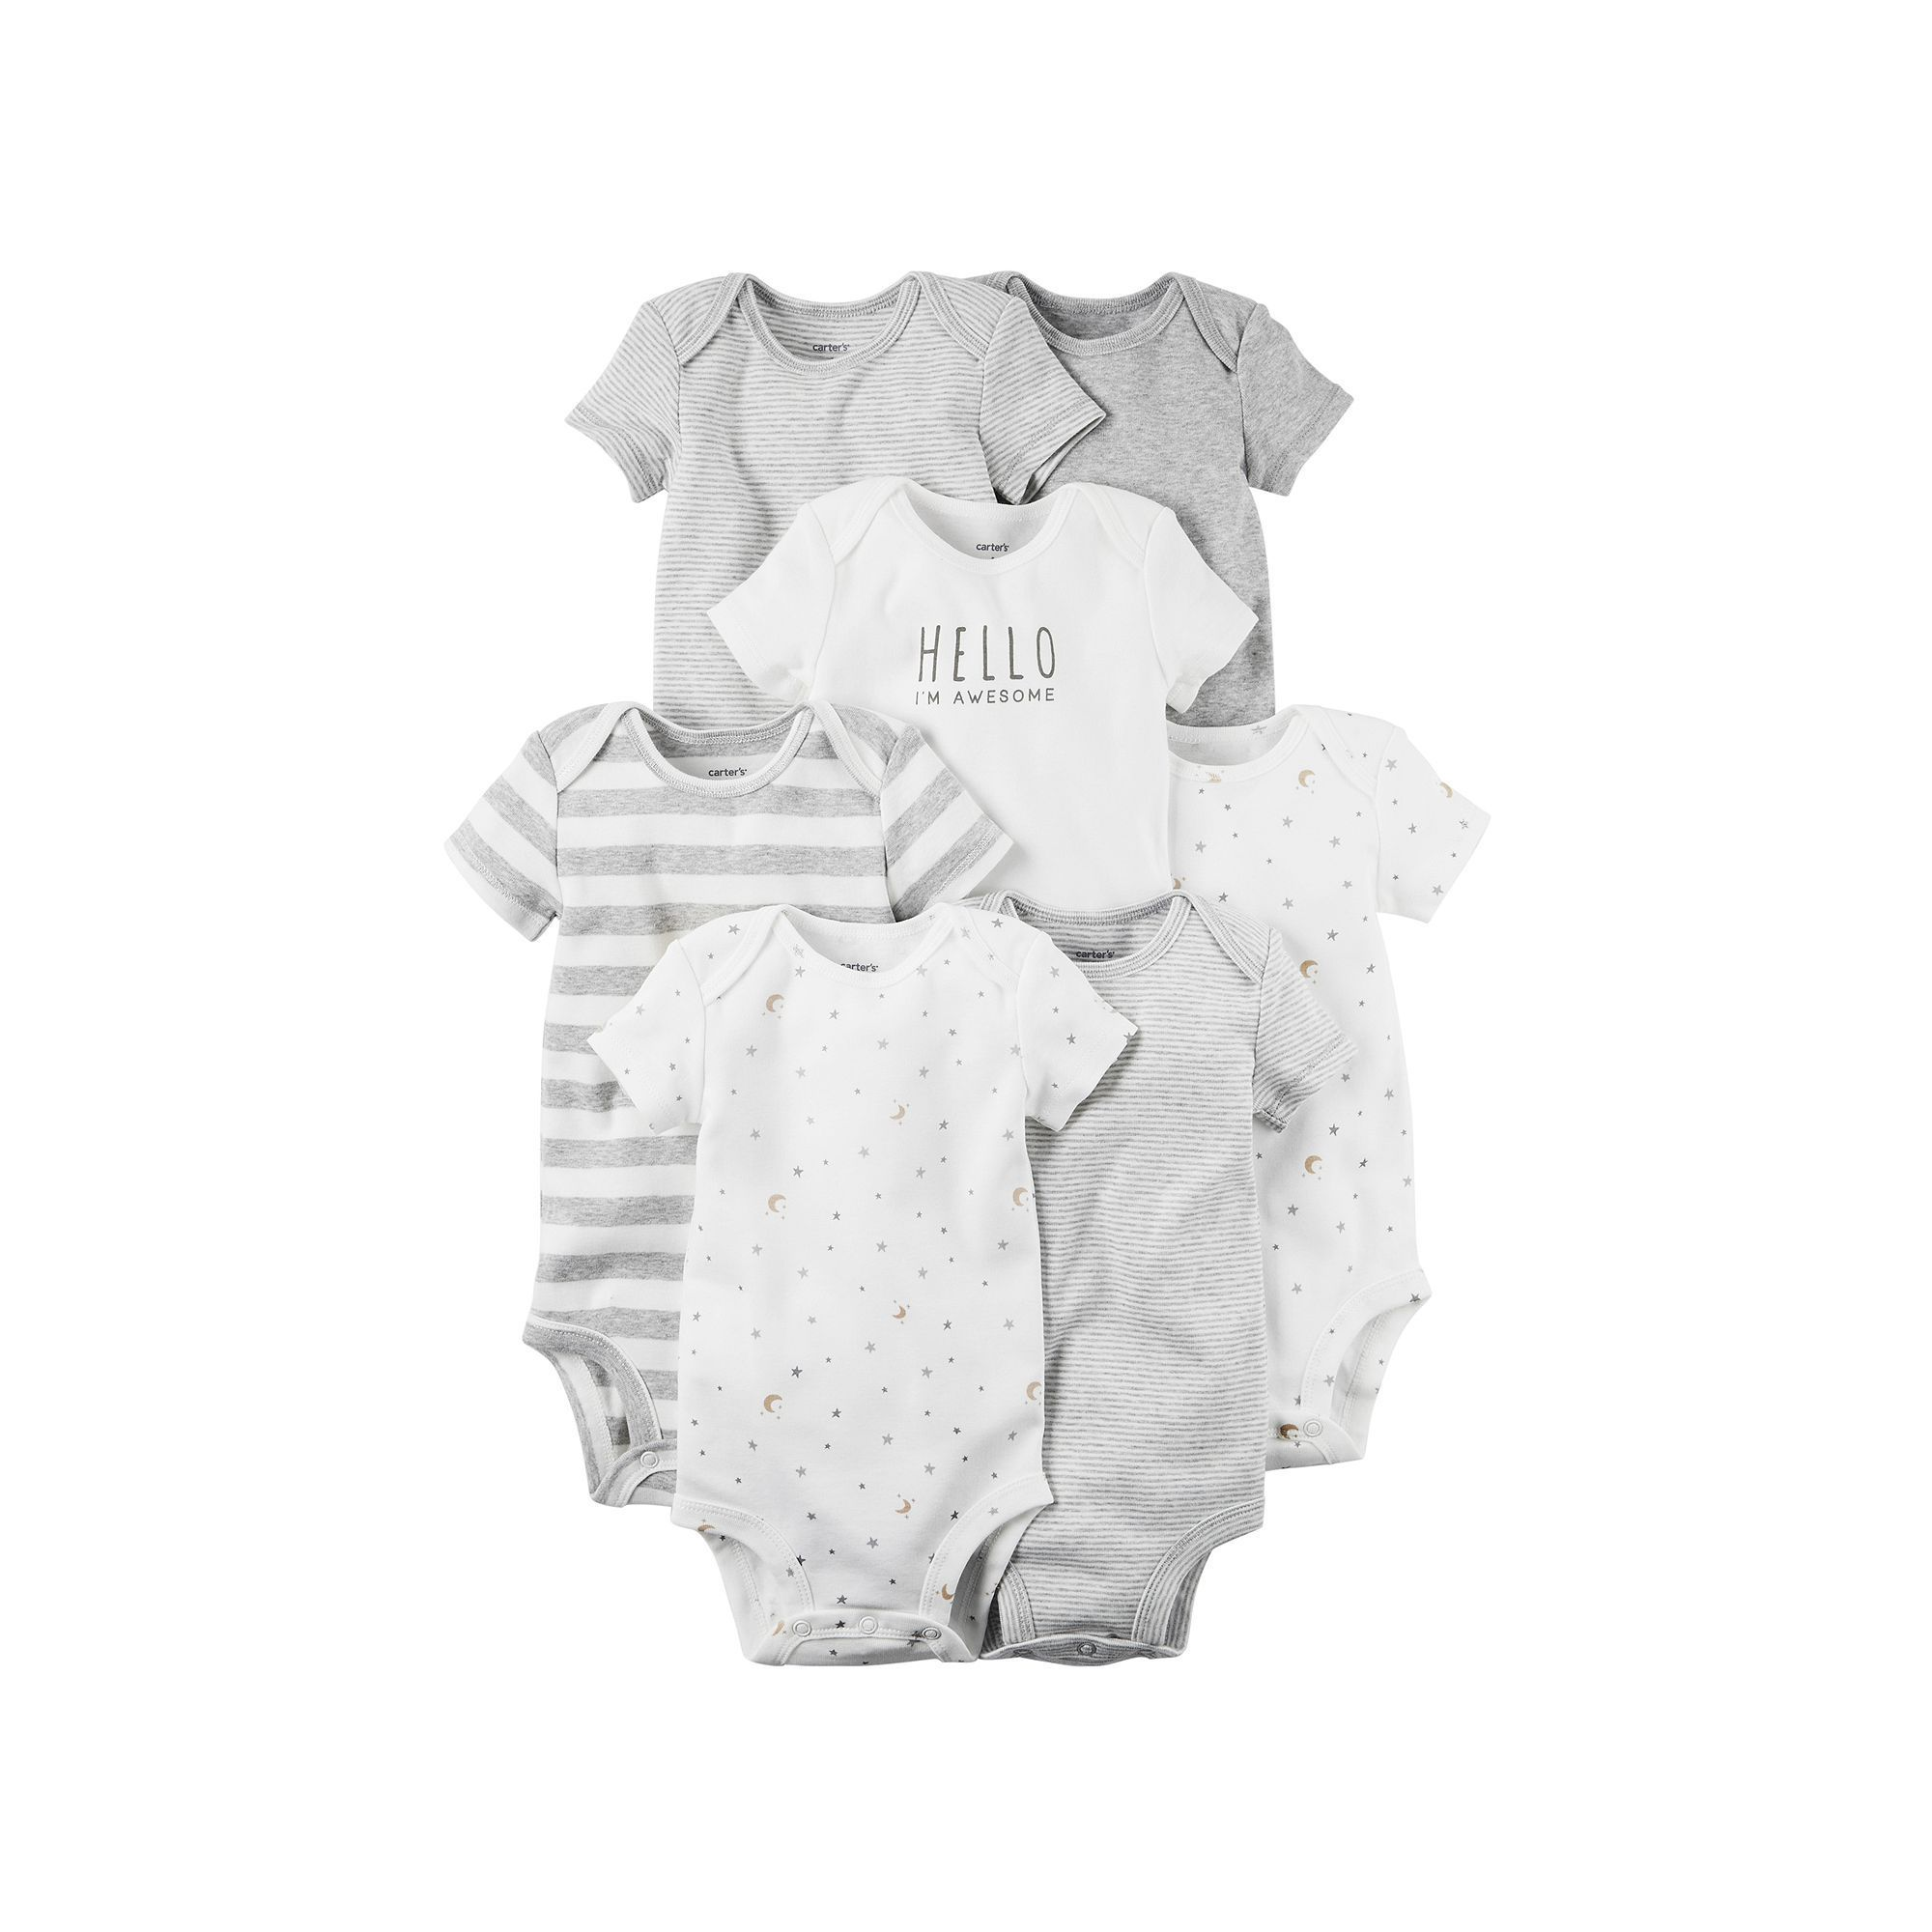 Baby Carter s 7 pk Print Graphic & Solid Bodysuits Infant Uni